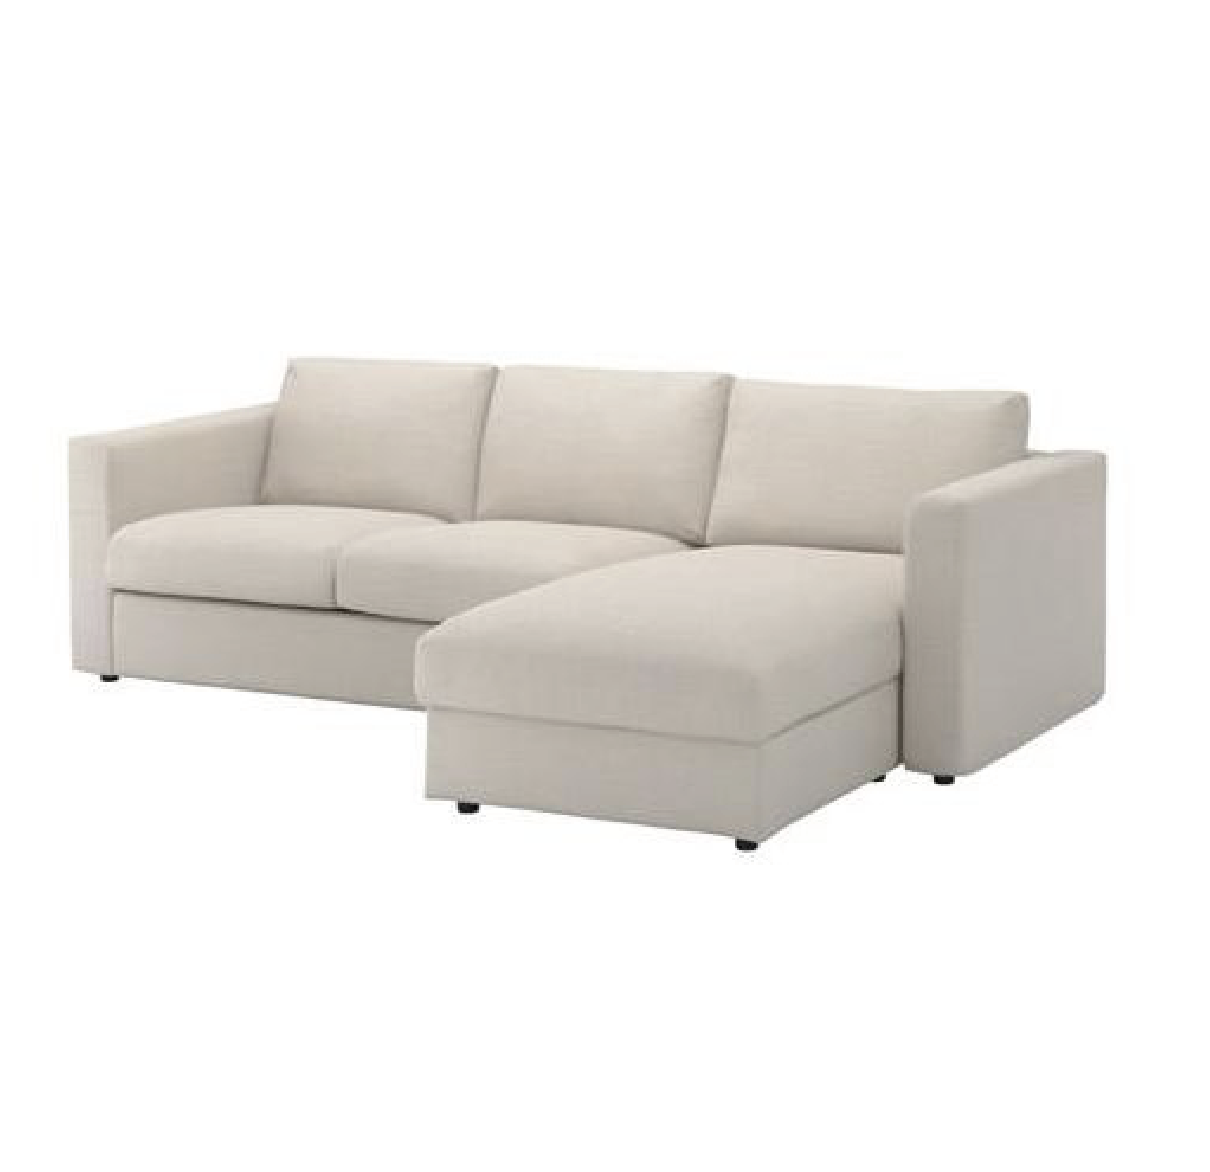 Ikea Us Furniture And Home Furnishings Ikea Vimle Ikea Sofa Fabric Sofa